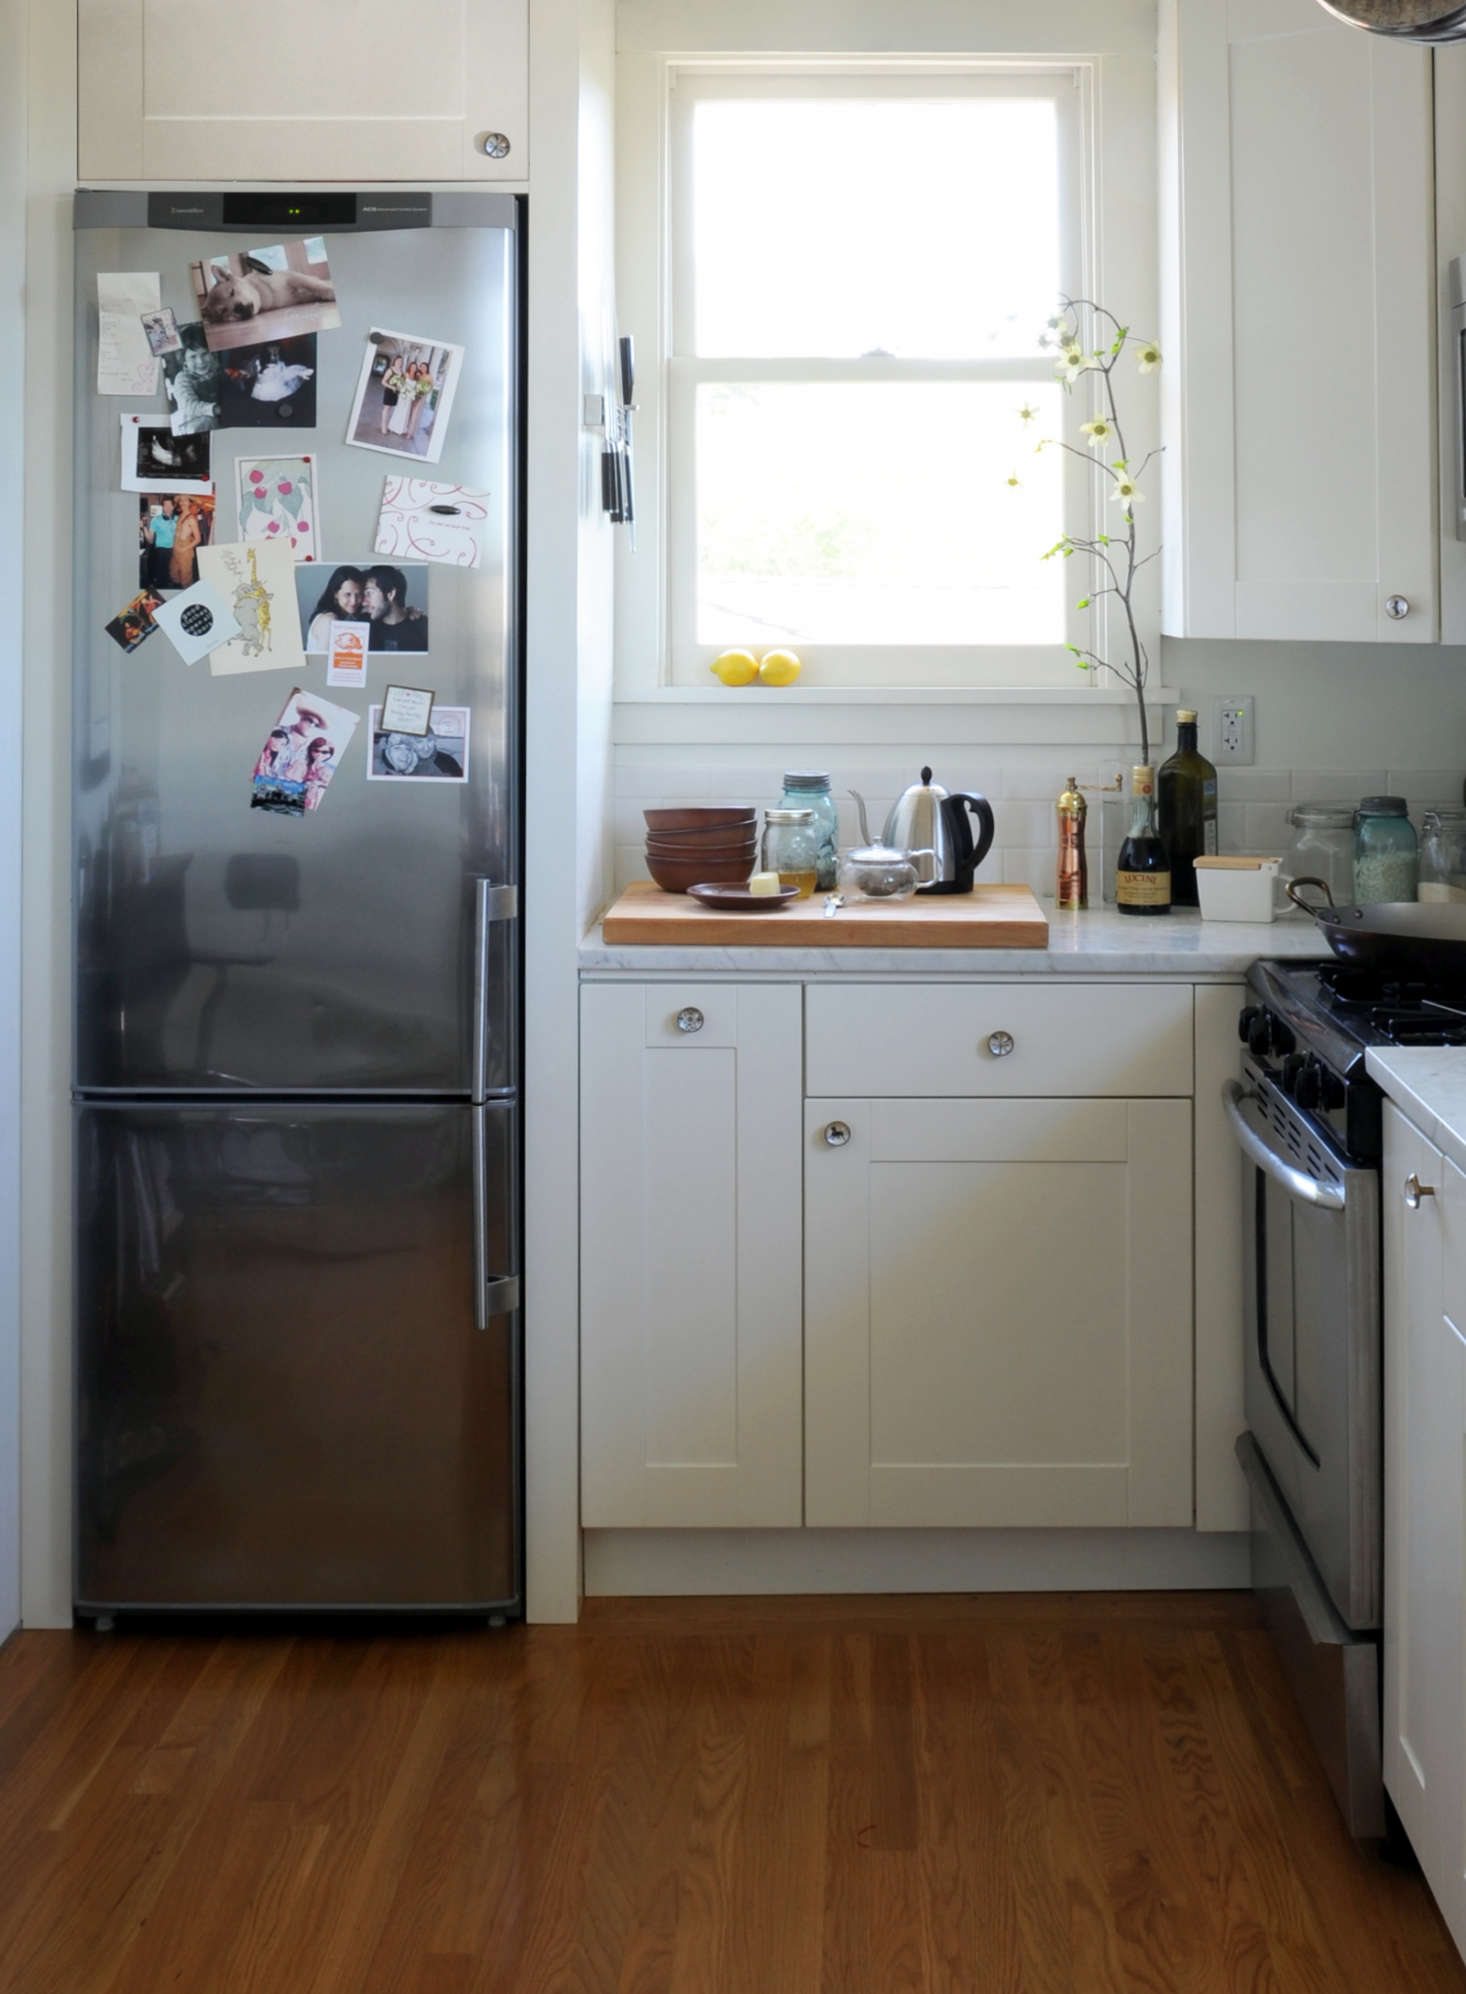 14 Tricks for Maximizing Space in a Tiny Kitchen Urban Edition  Remodelista